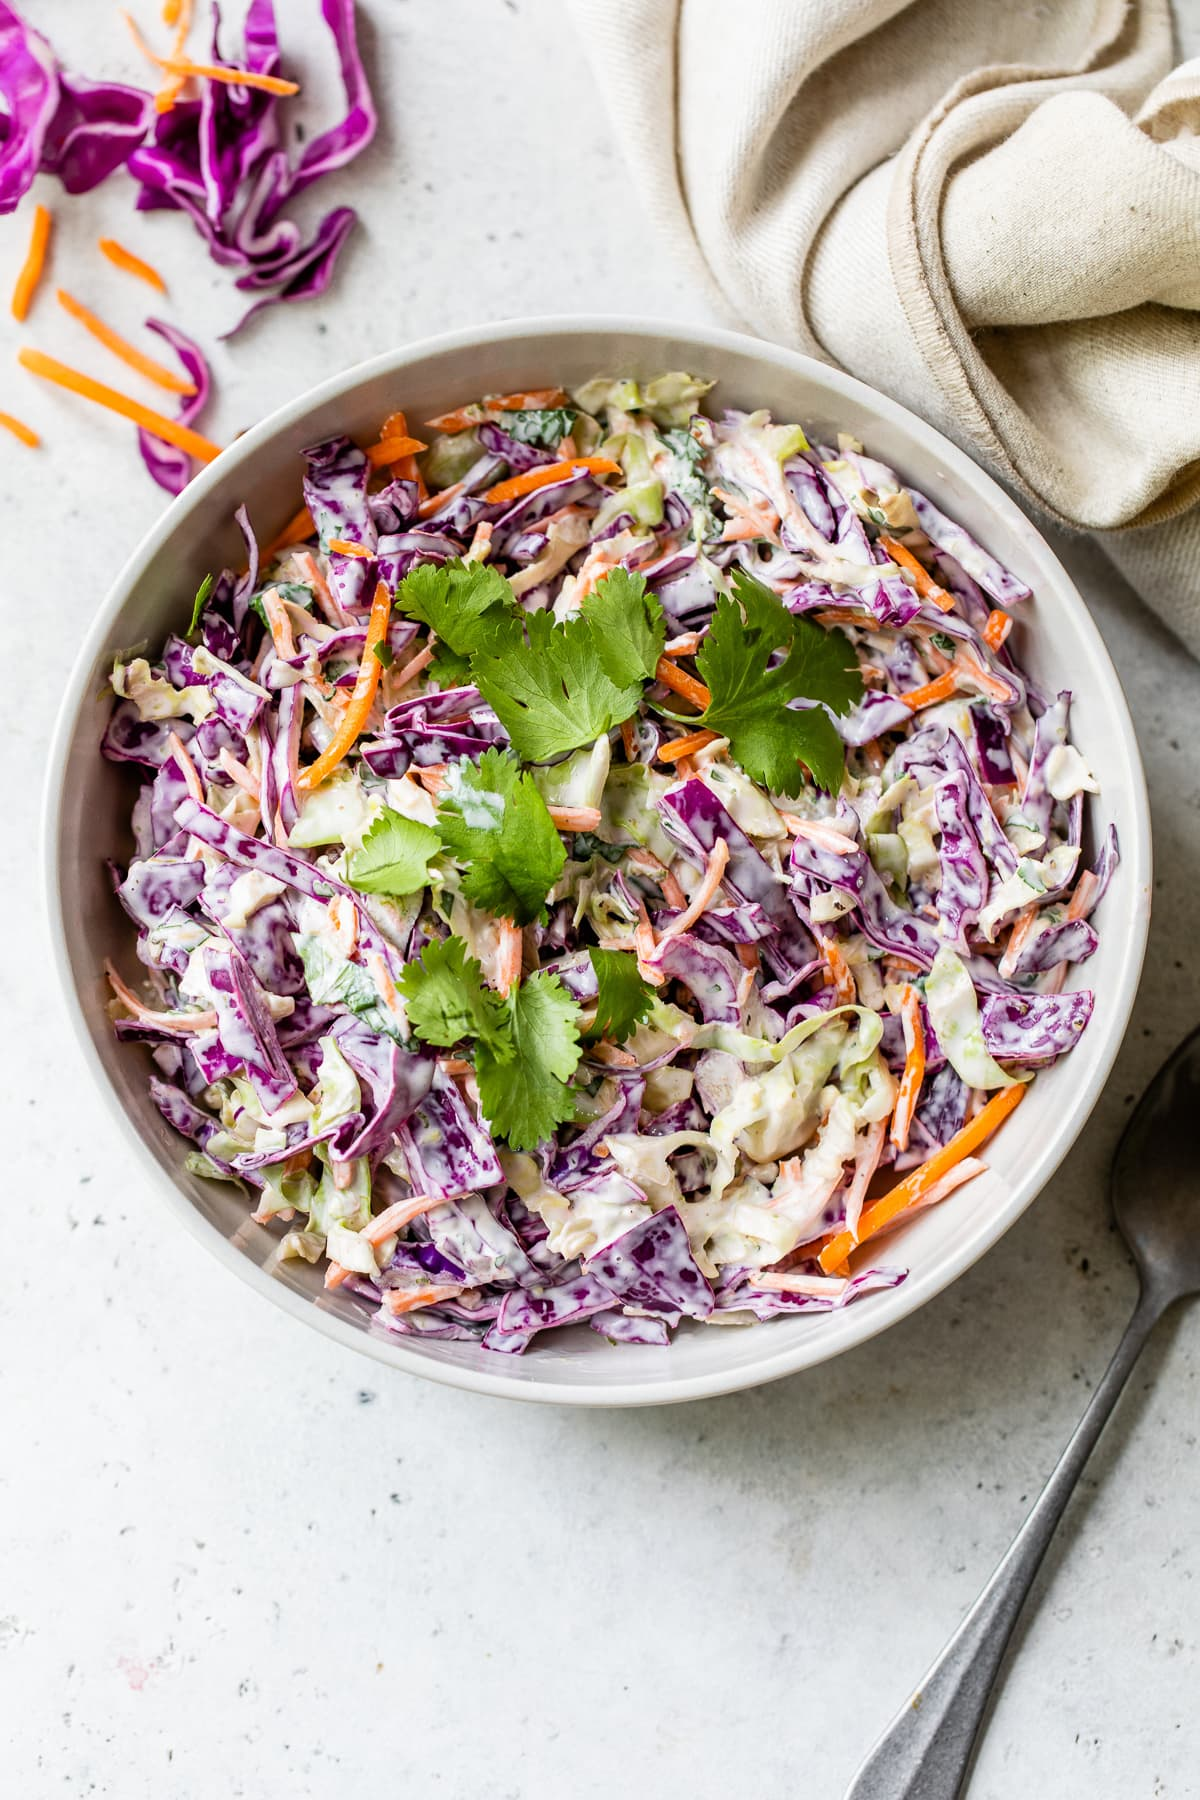 A creamy slaw in a bowl ready to be served.